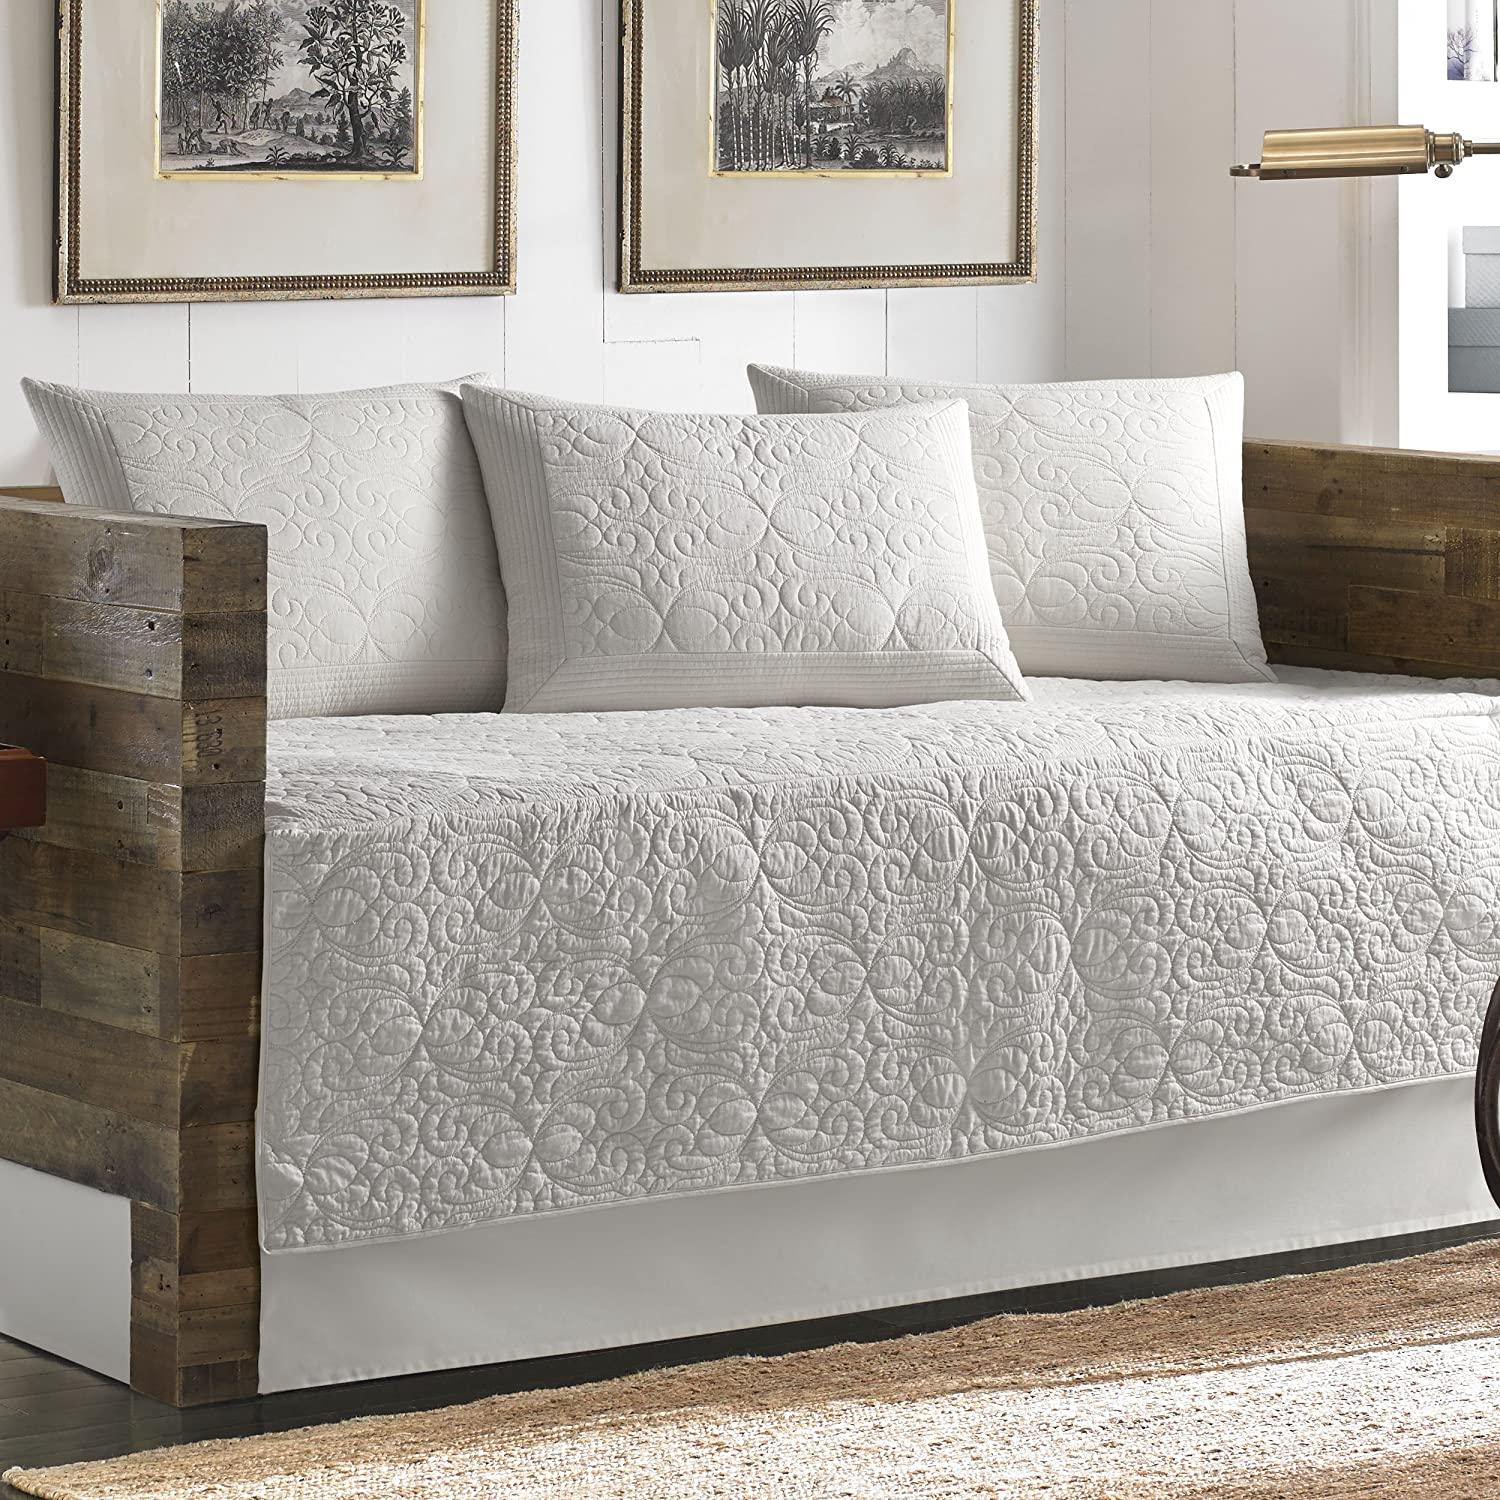 Tommy Bahama 5 Piece Quilted Daybed Cover Set, White